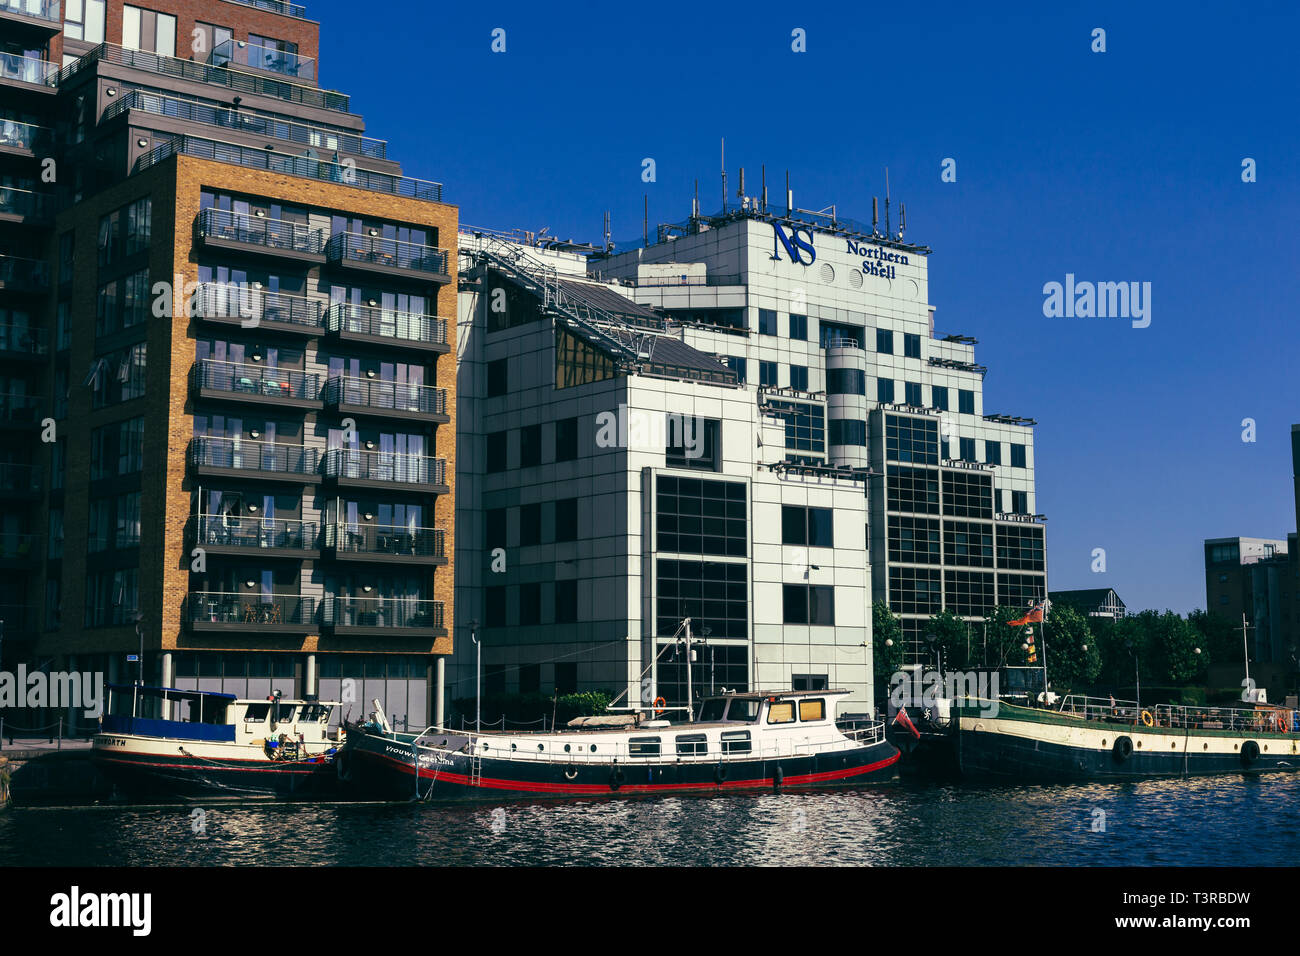 London, UK - July 23, 2018: Houseboats moored in the Millwall Outer Dock , Isle of Dogs. Housebat is a boat that has been designed or modified to be u - Stock Image